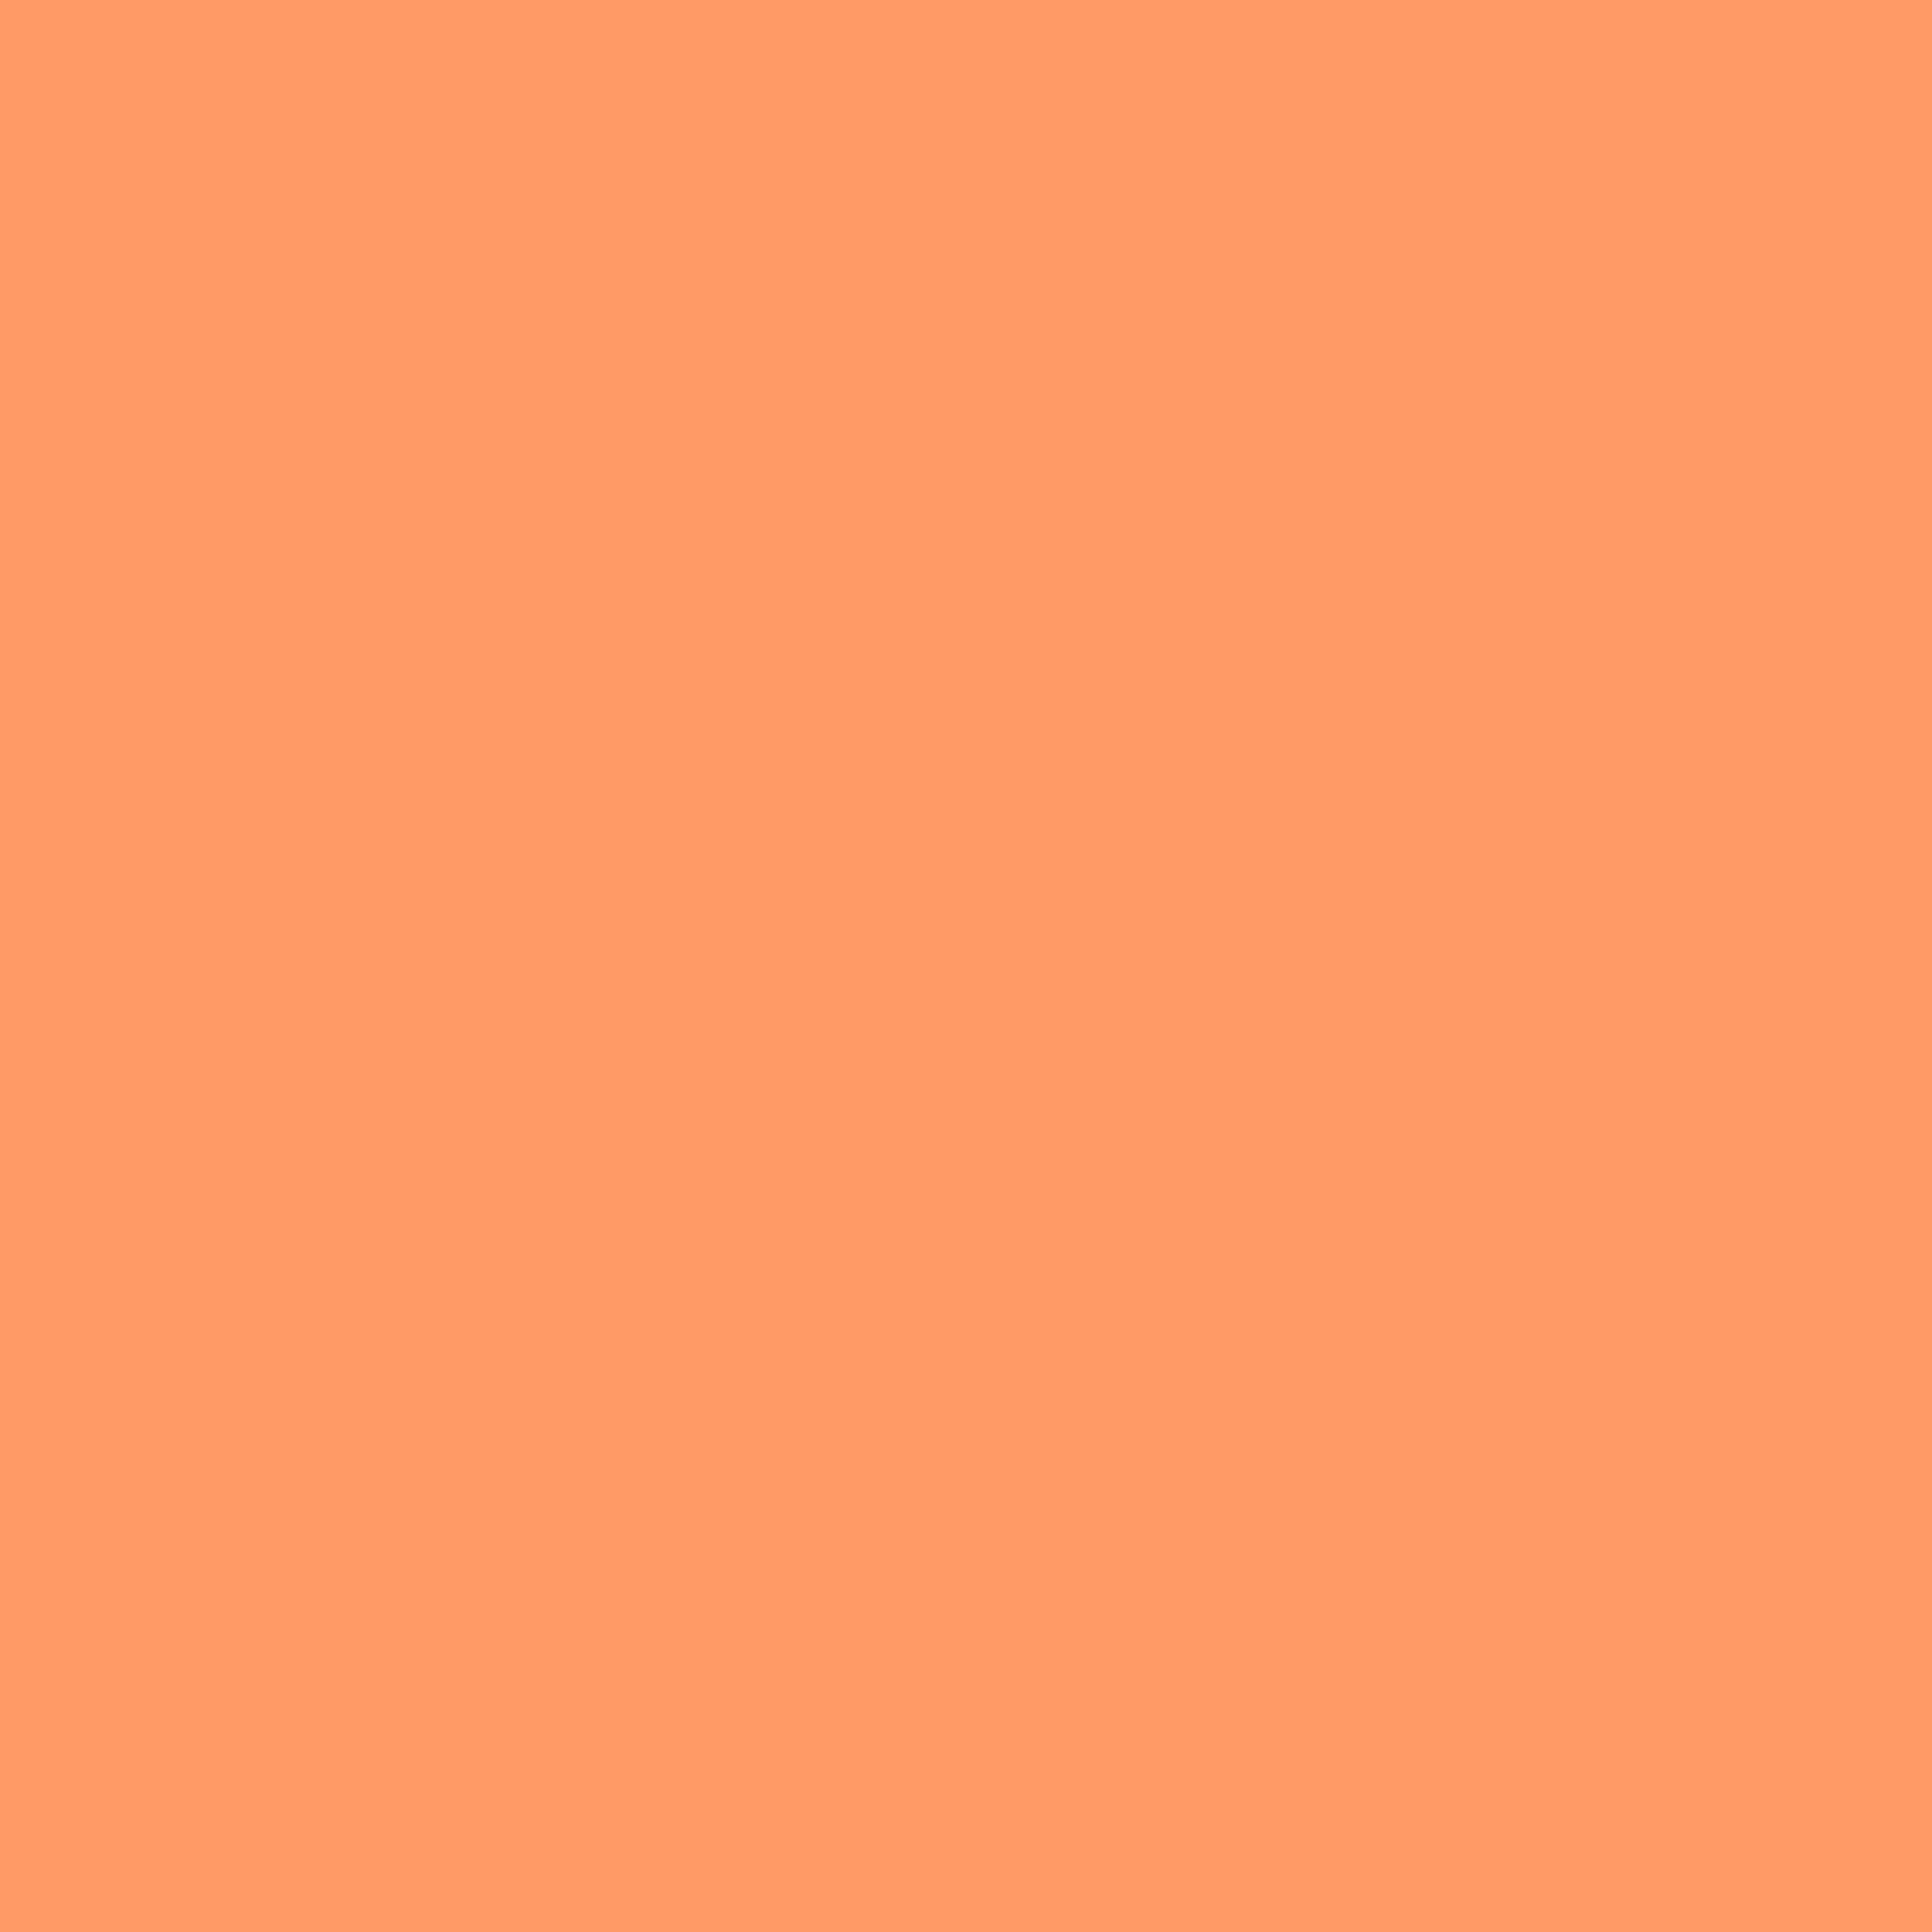 2048x2048 Atomic Tangerine Solid Color Background